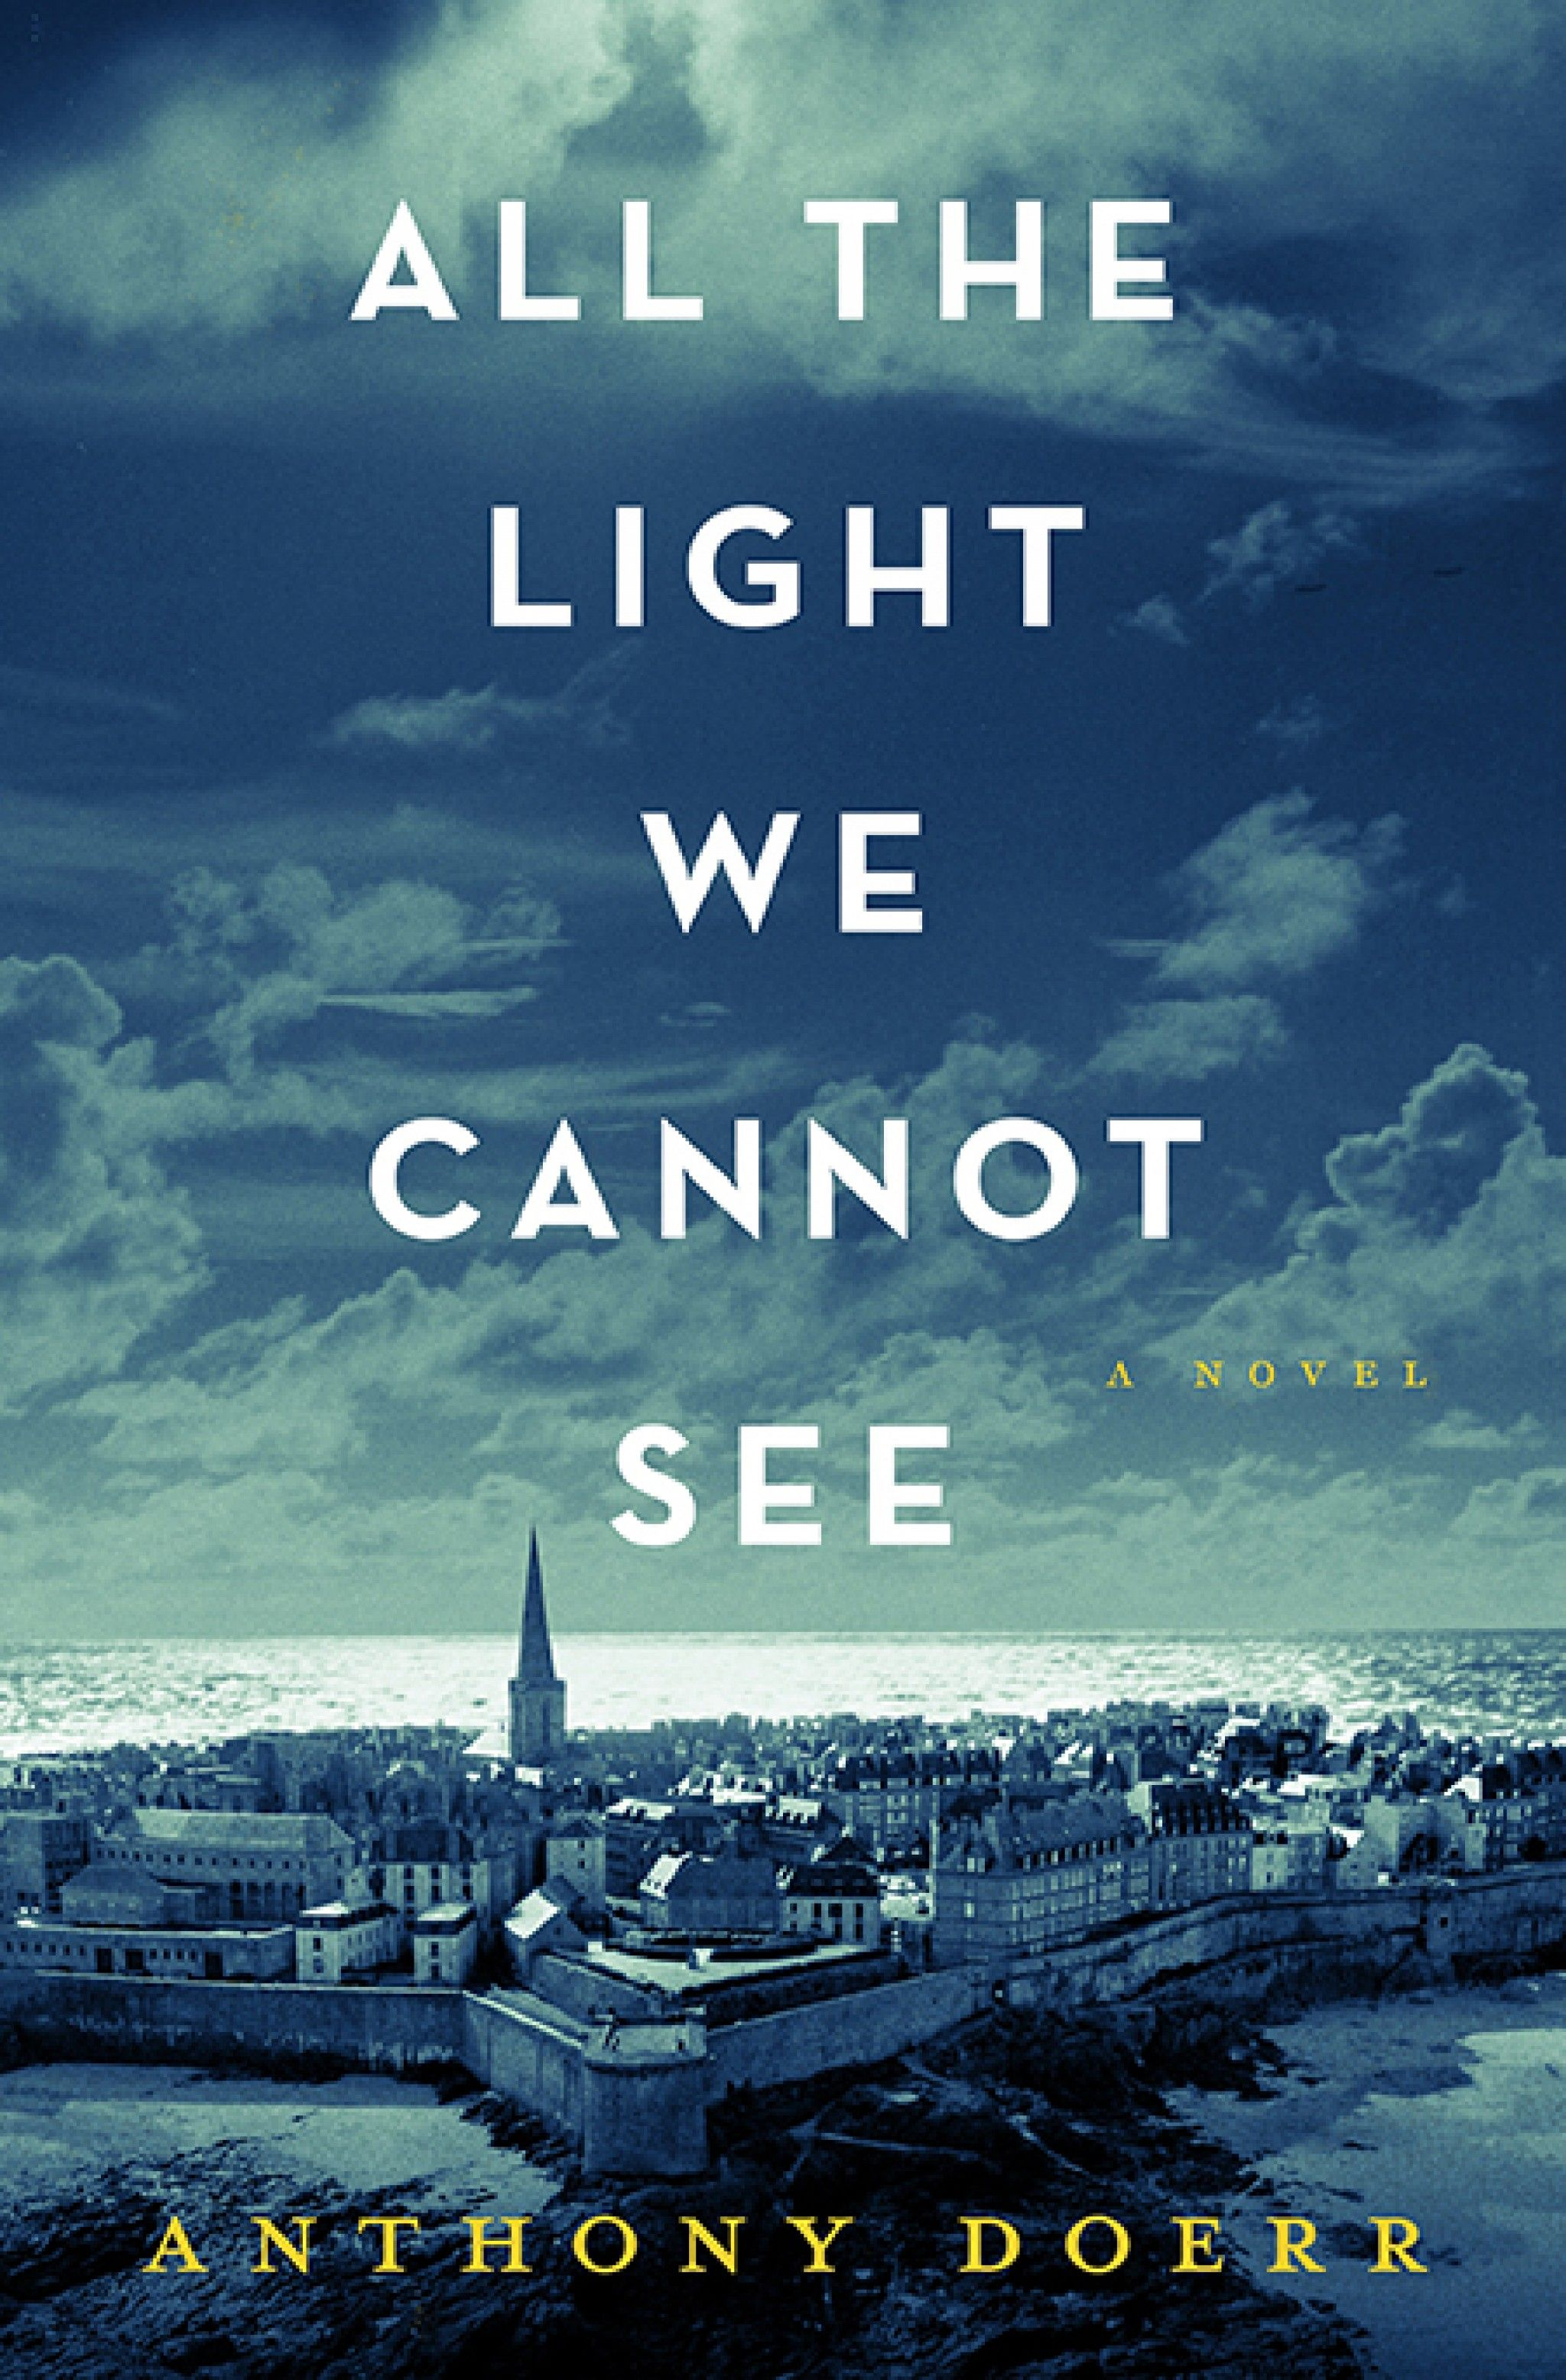 All the light we cannot see by anthony doerr best books